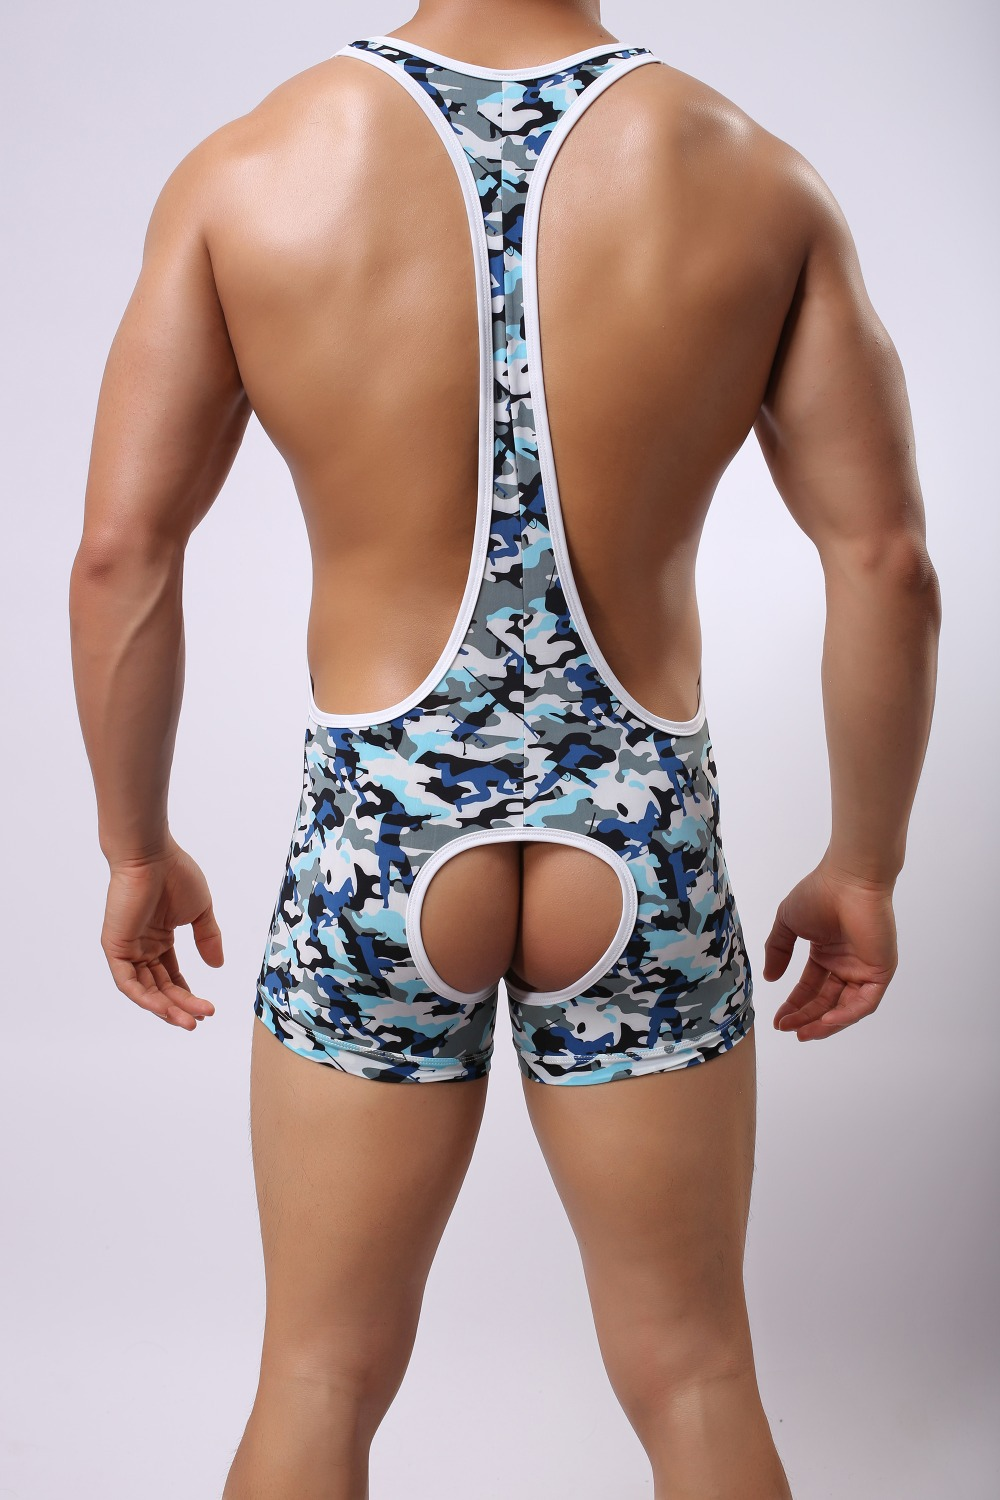 Popular Designer Underwear Mens-Buy Cheap Designer Underwear Mens ...